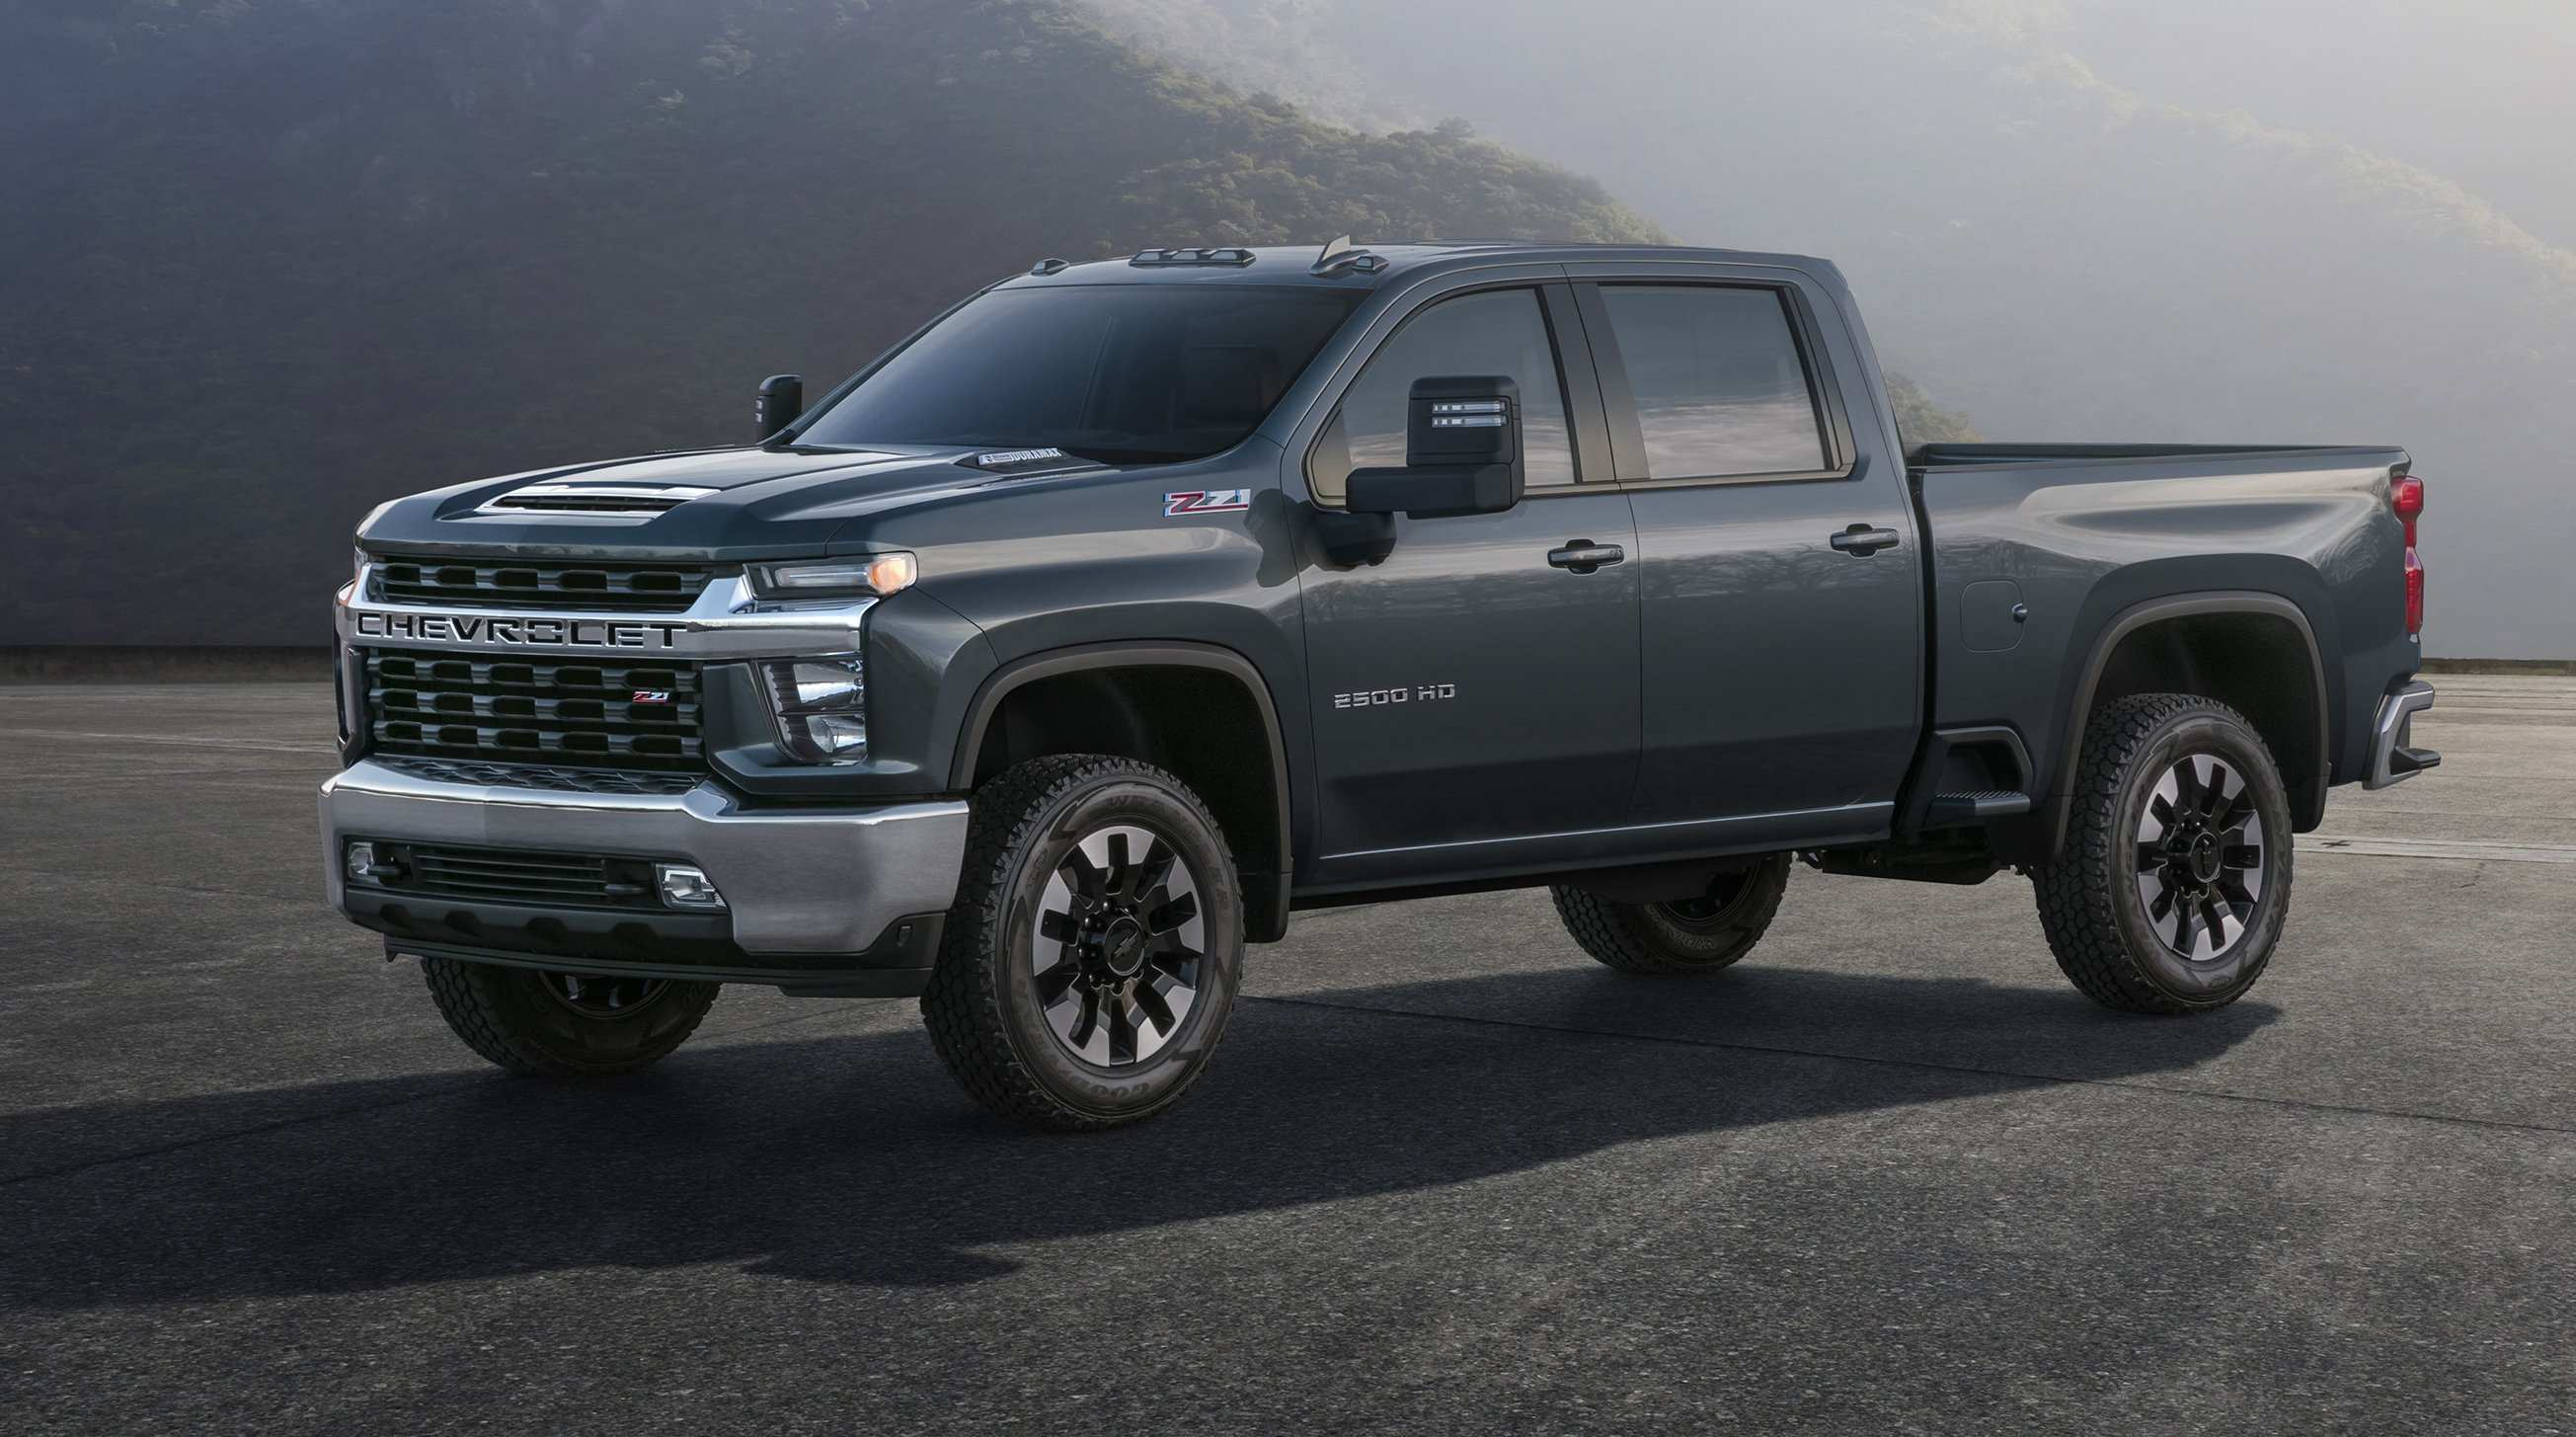 43 All New New 2019 Chevrolet Silverado Work Truck Concept Redesign And Review Pictures with New 2019 Chevrolet Silverado Work Truck Concept Redesign And Review